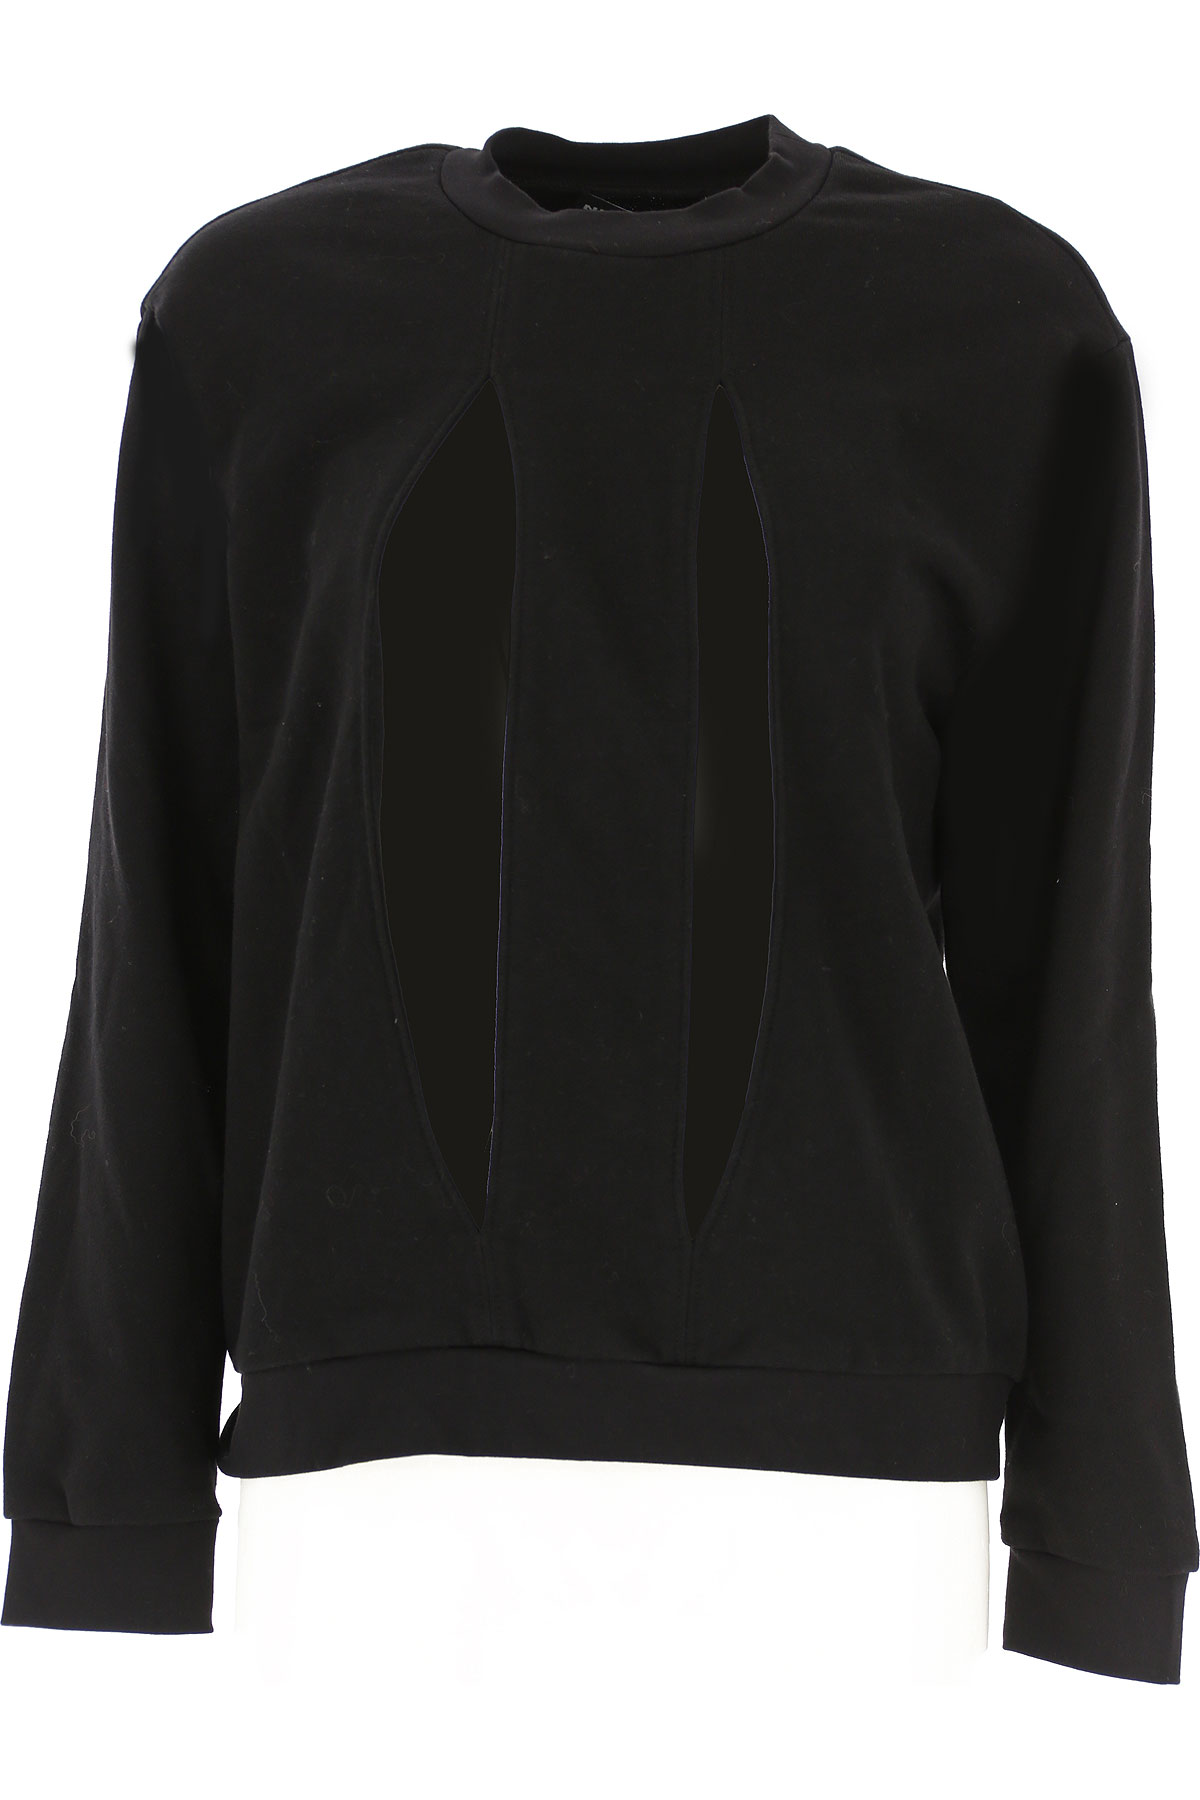 Nicopanda Sweatshirt for Women On Sale, Black, Cotton, 2019, 10 2